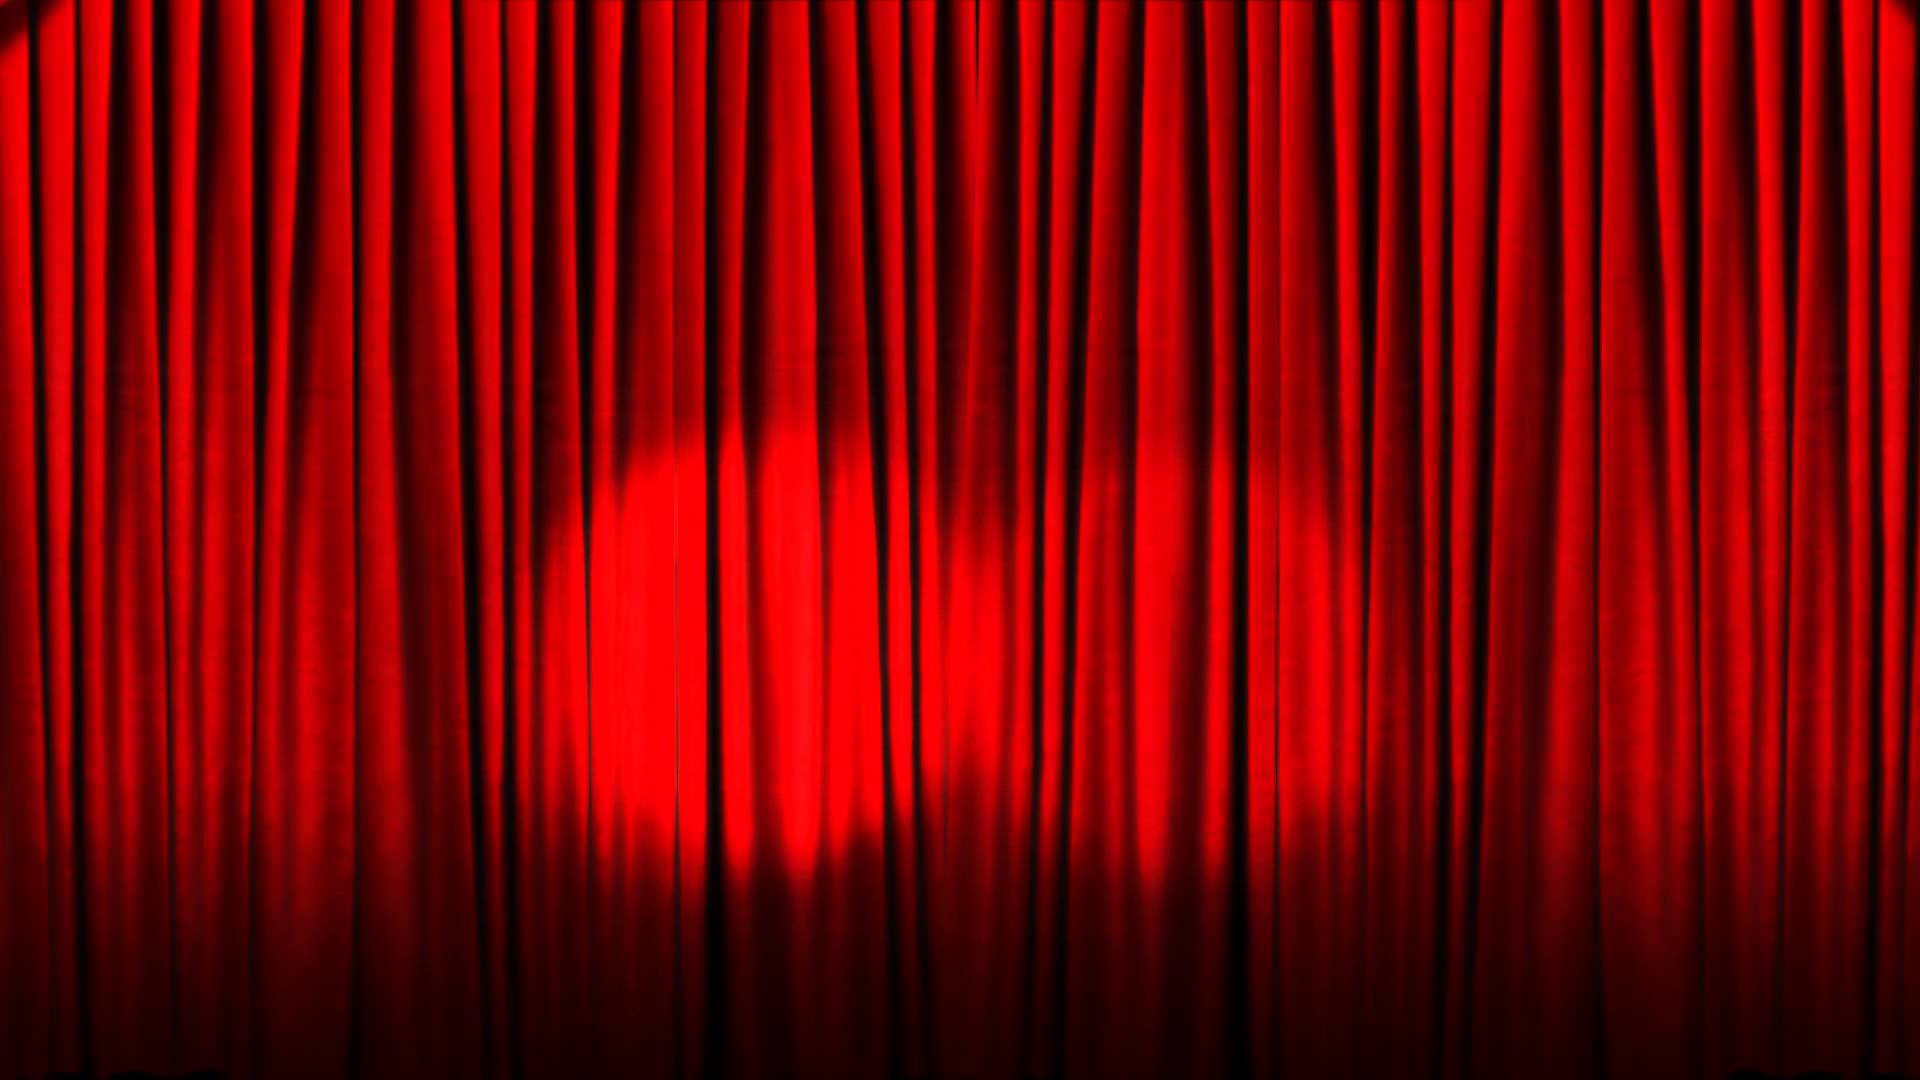 Curtain Swing Open Animation - YouTube